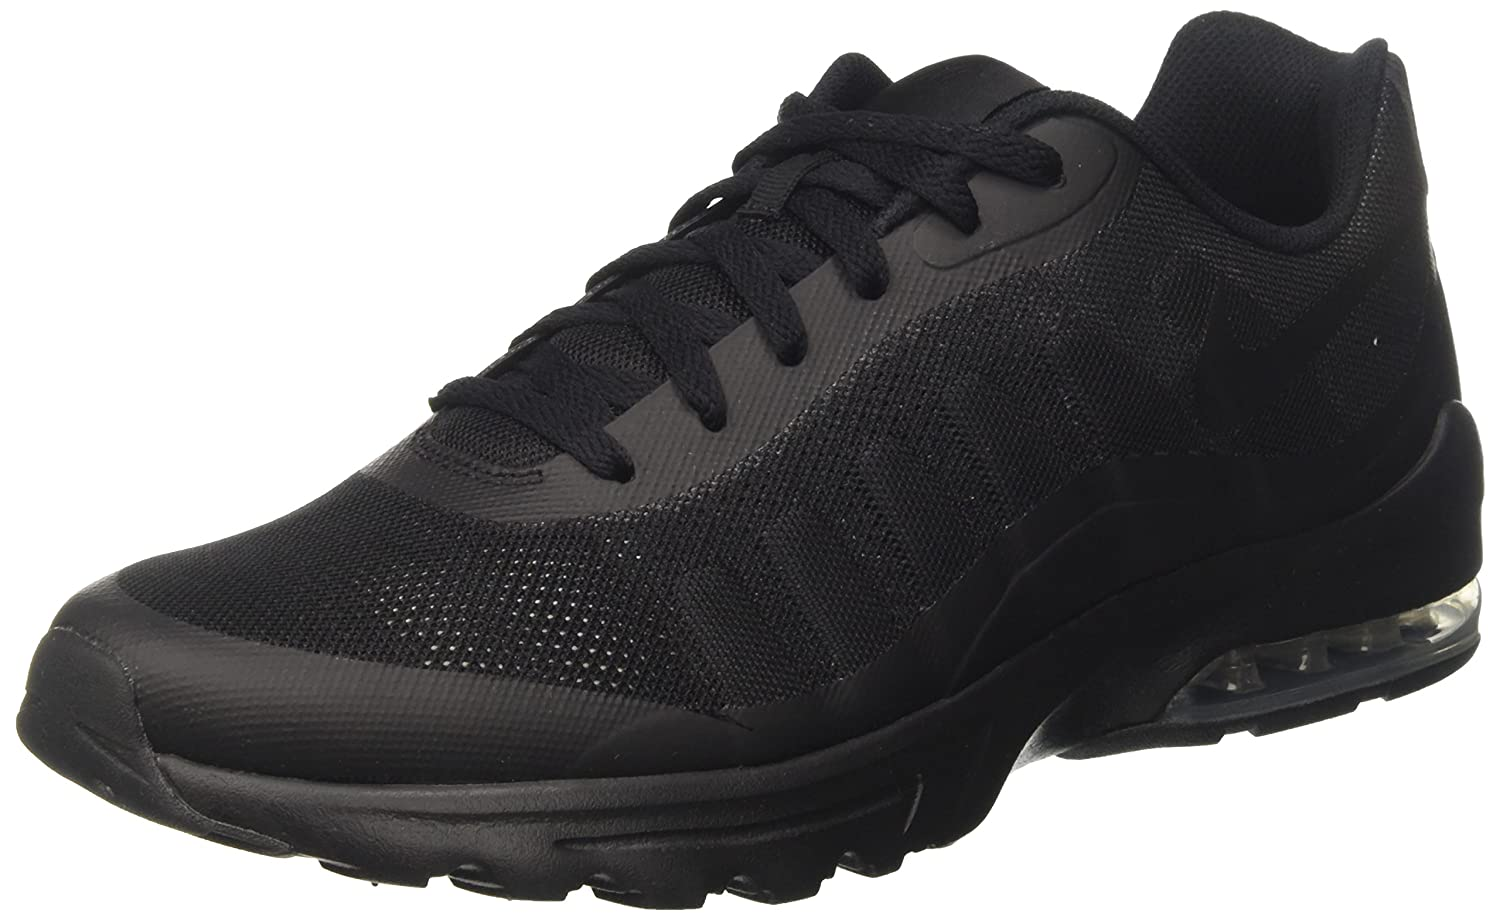 Nike Men's Air Max Invigor Sneakers